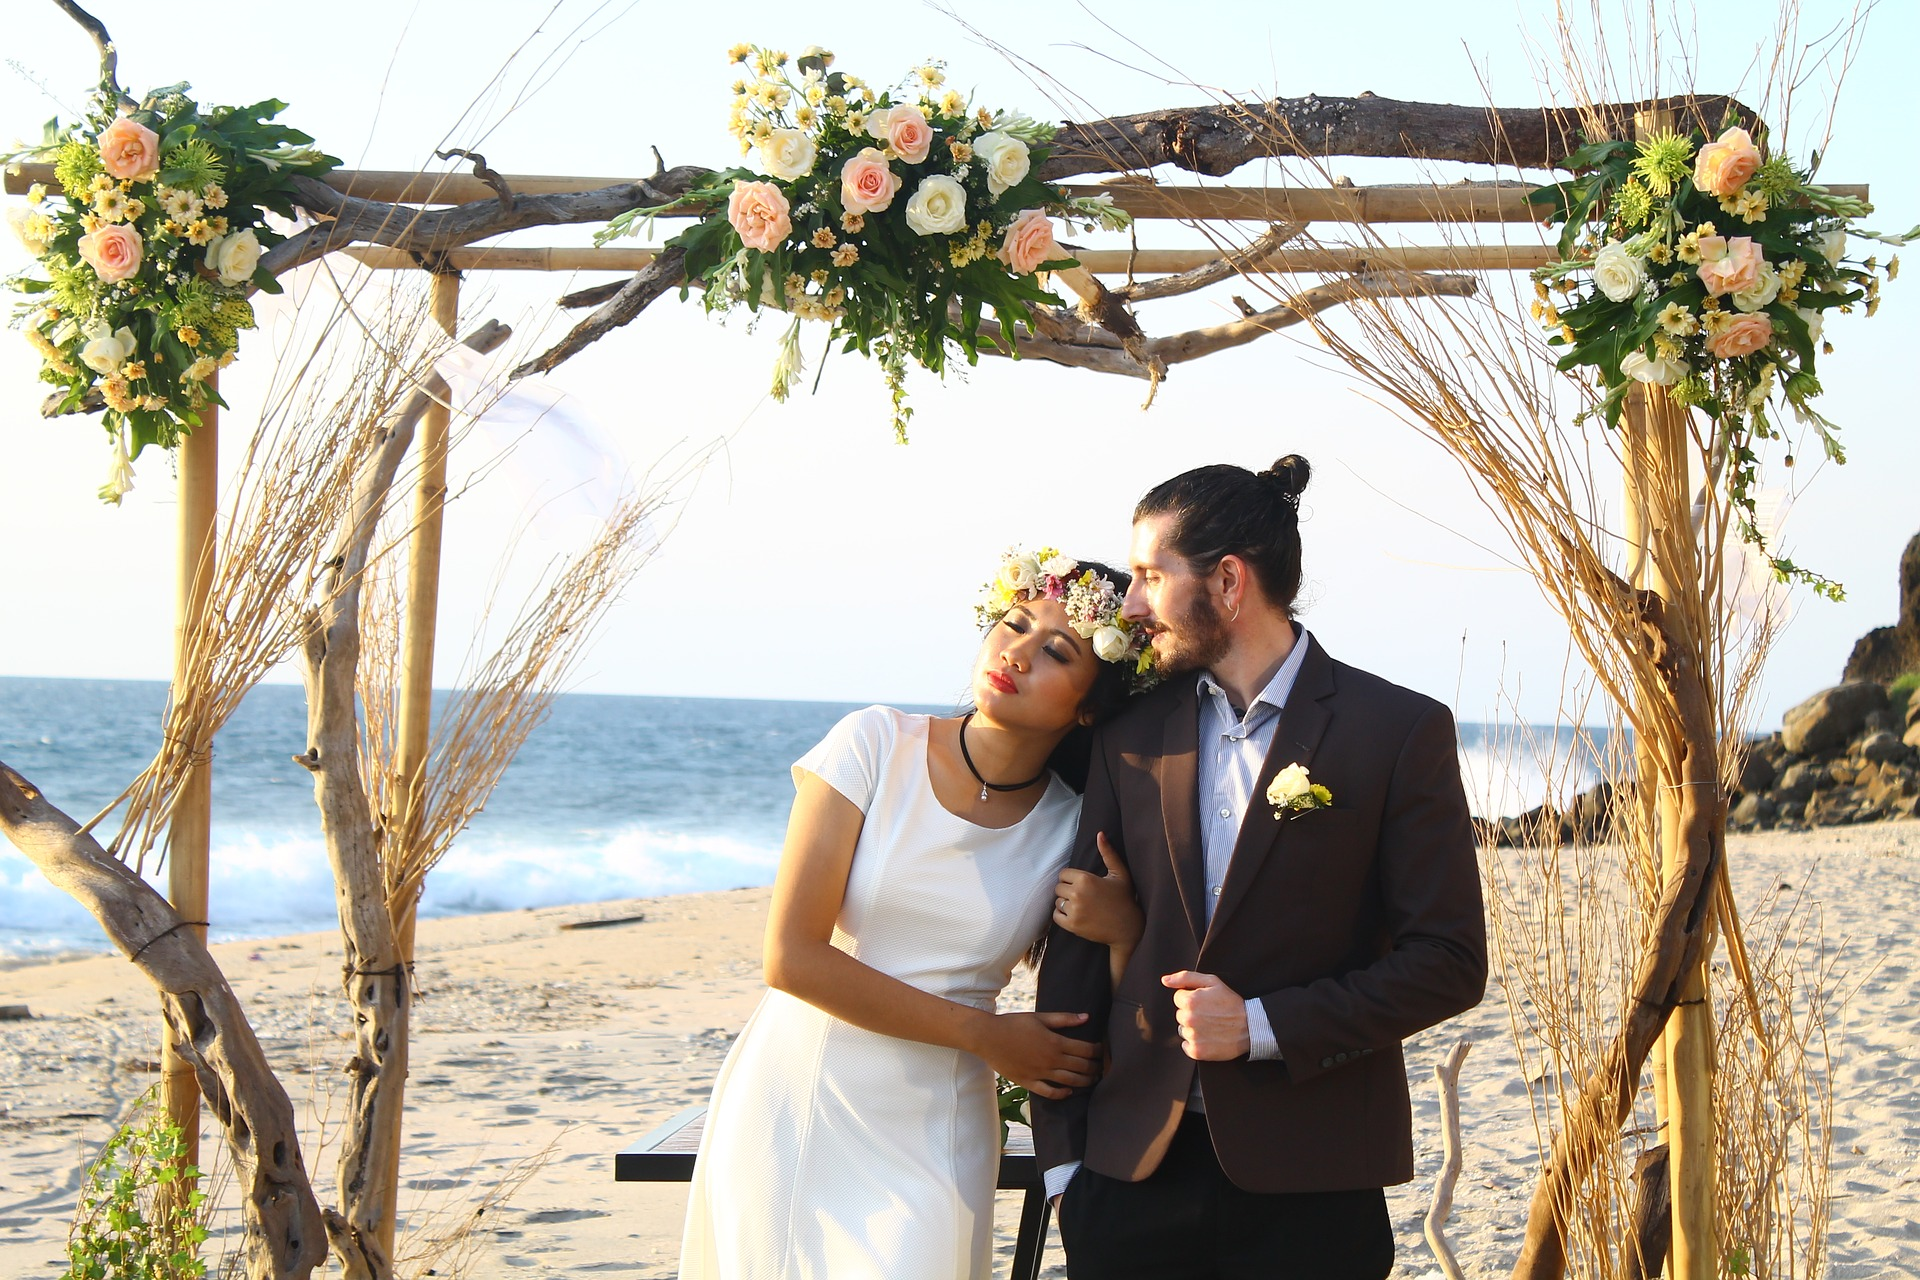 Couple S Wedding Ceremony And Reception Held At The Beach: Secrets Of A Successful Remote Wedding